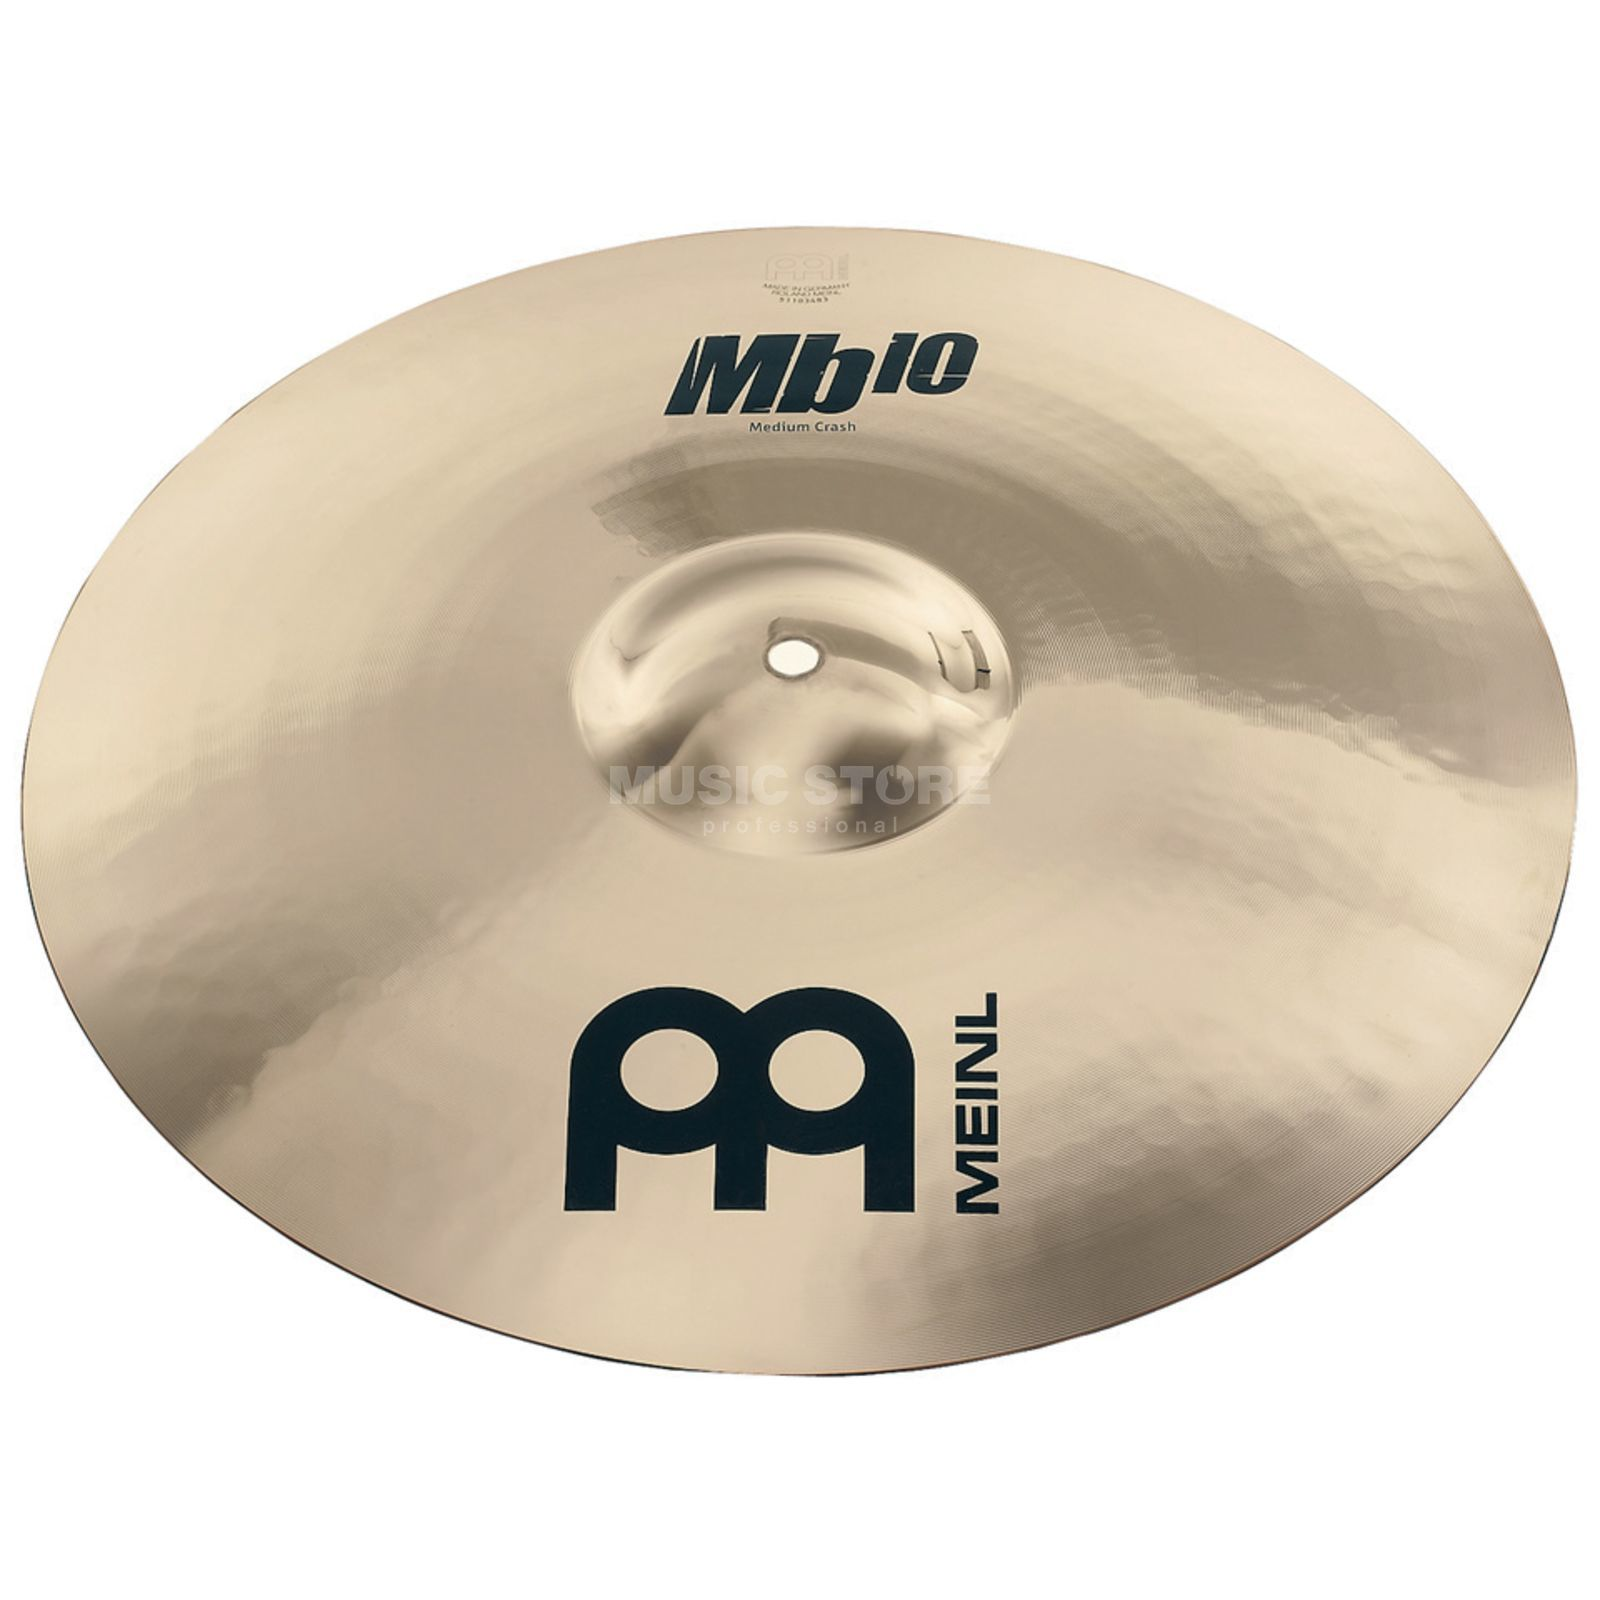 "Meinl MB10 Medium Crash 18"" MB10-18MC-B, Brilliant Finish Produktbild"